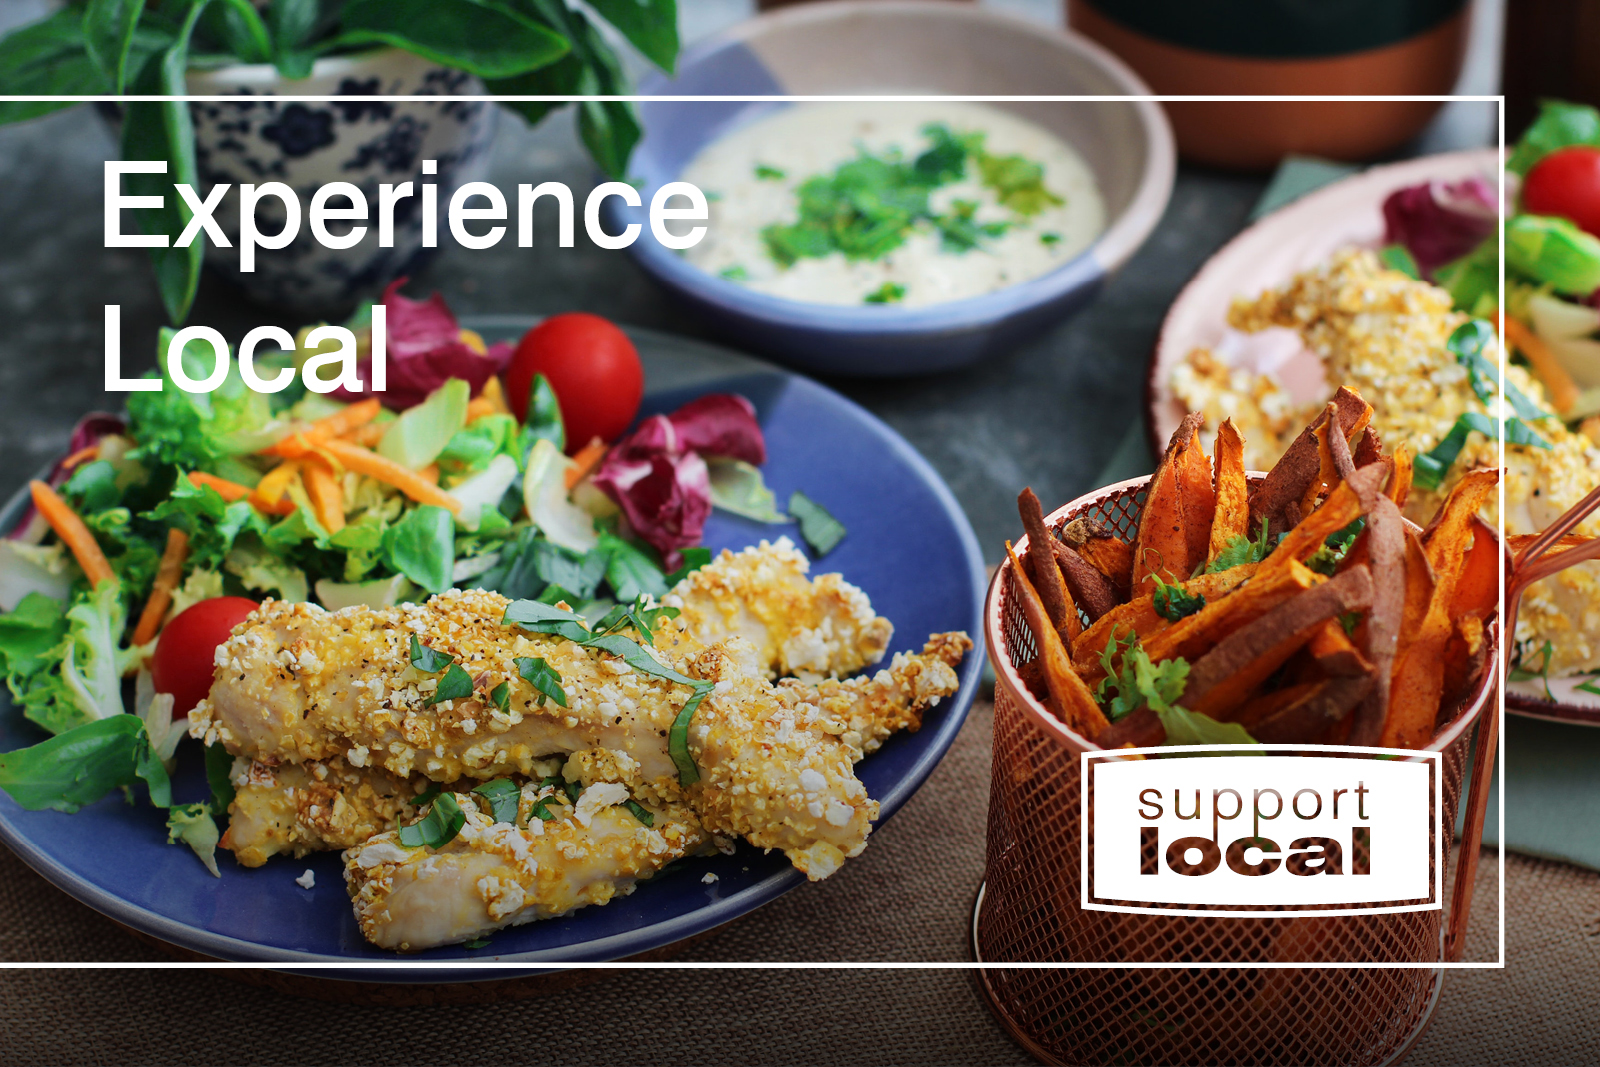 Experience Local - Gluten Free options